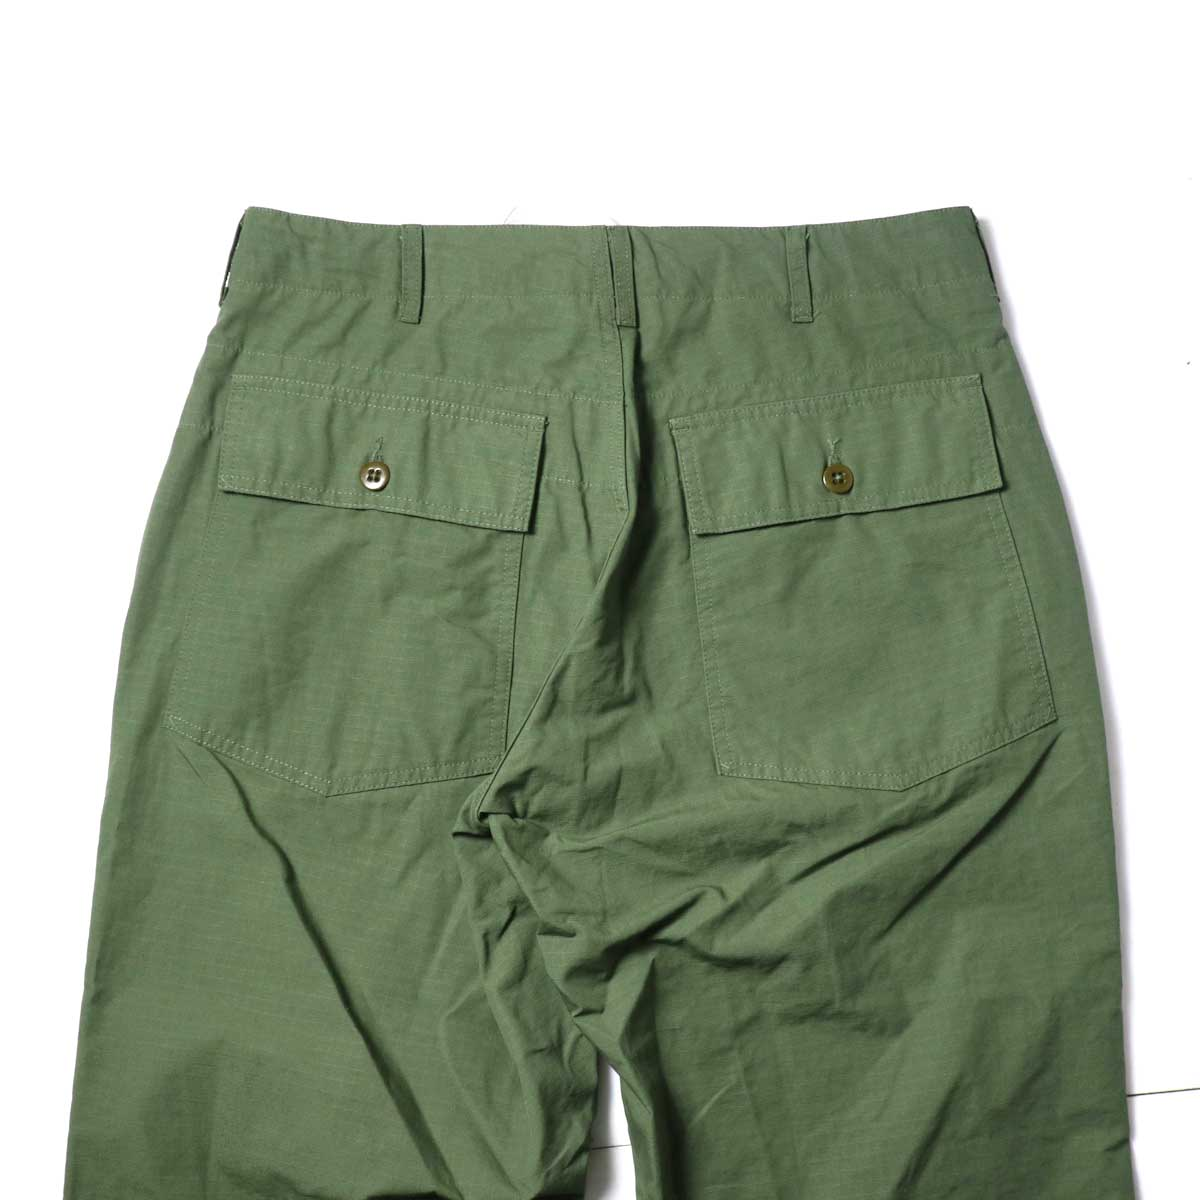 Engineered Garments / Fatigue Pant - Cotton Ripstop (Olive)ヒップポケット